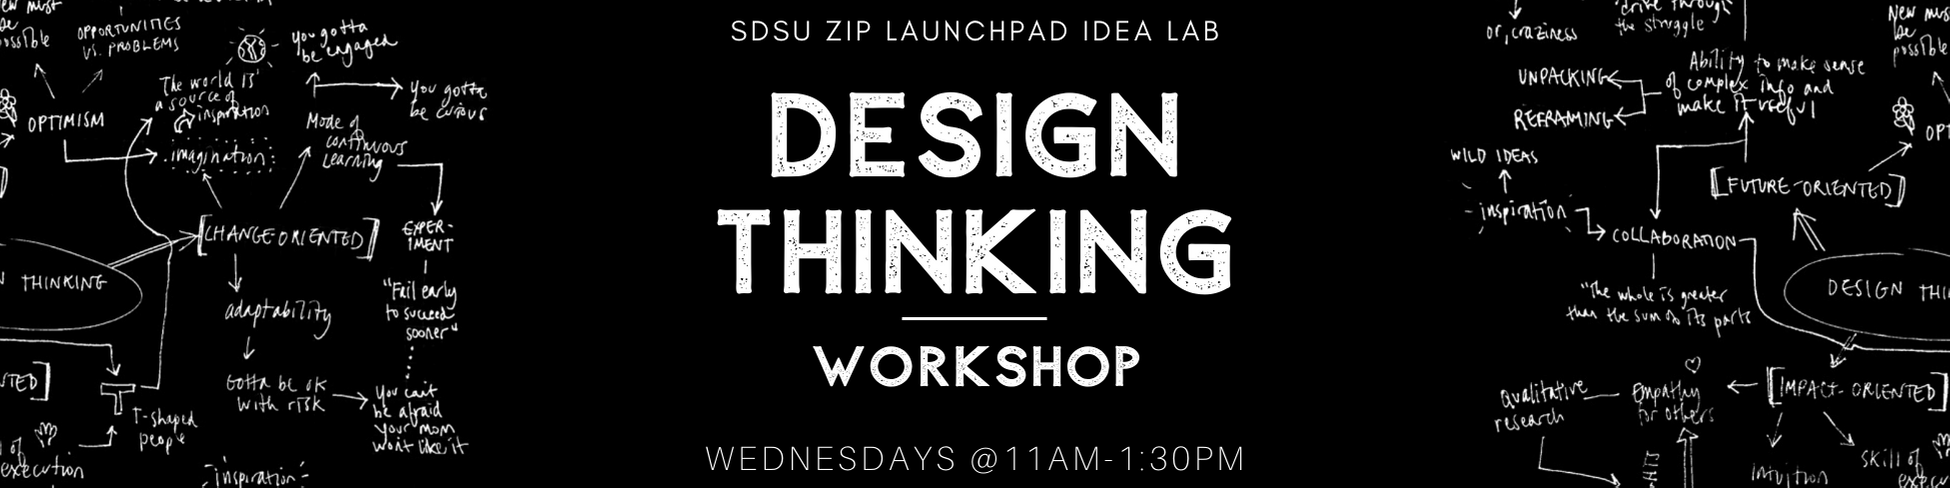 Design Thinking Workshop - ZIP Launchpad Idea Lab